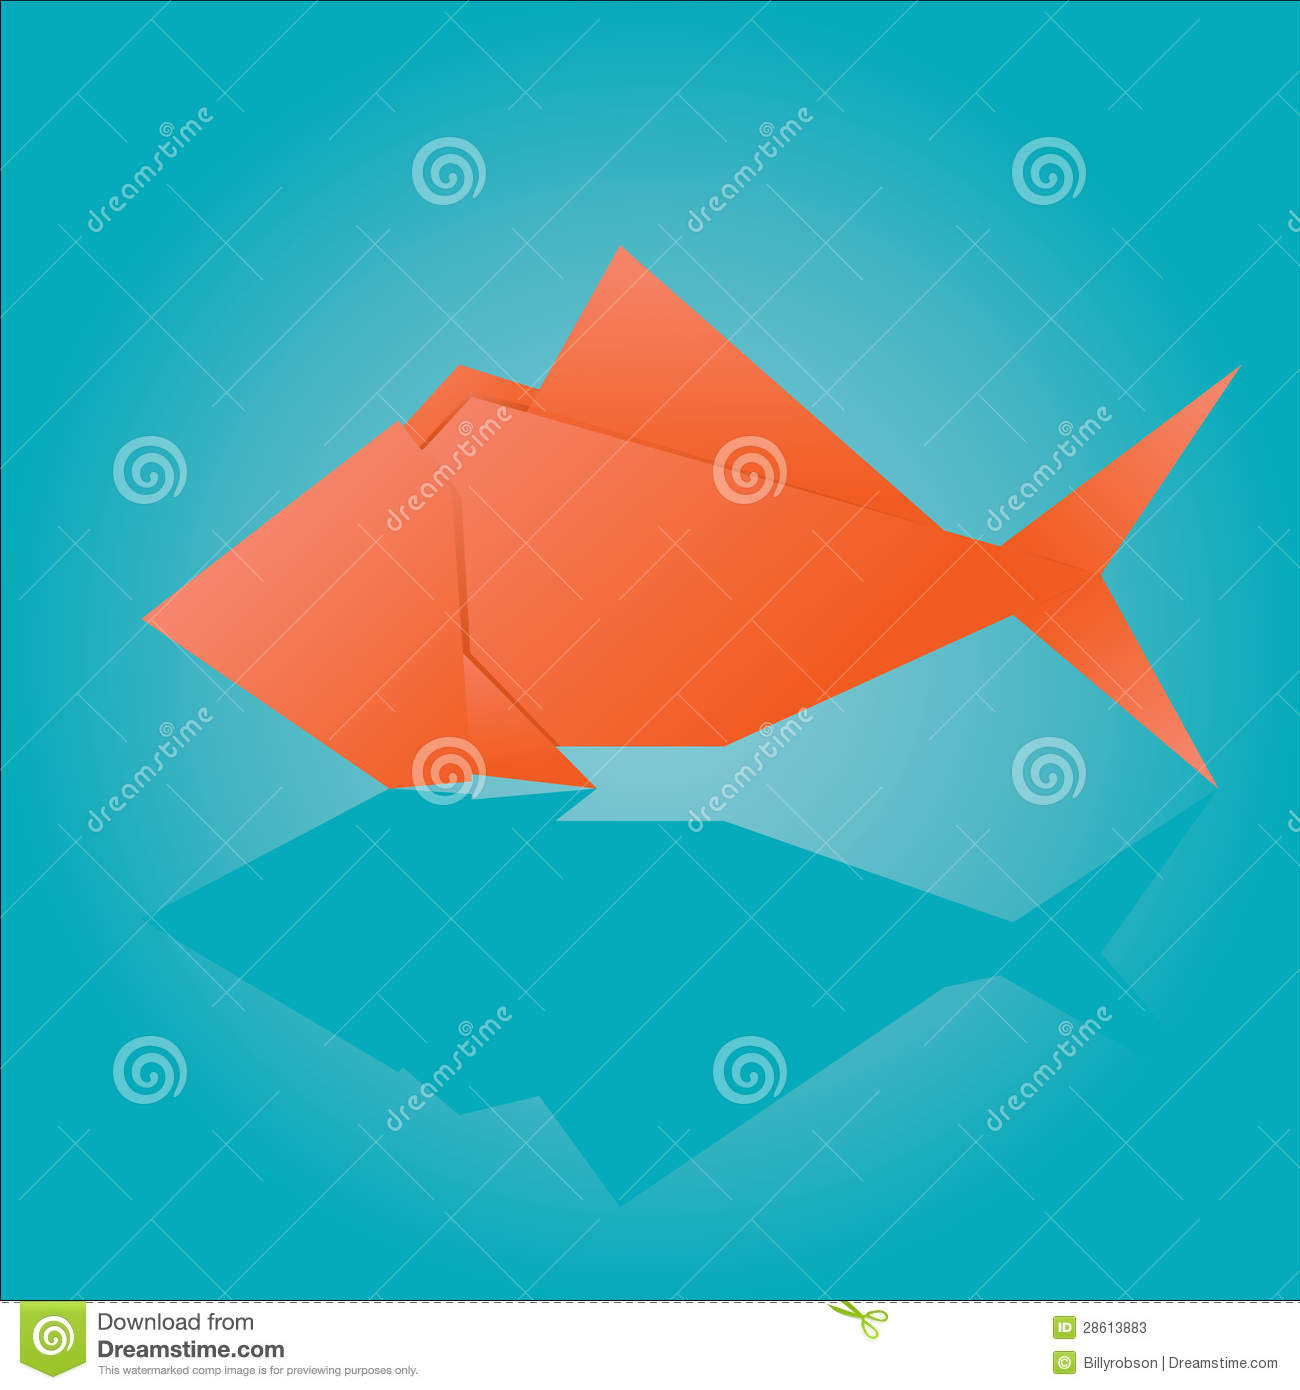 Origami fish stock vector. Illustration of japan, icon ... - photo#41